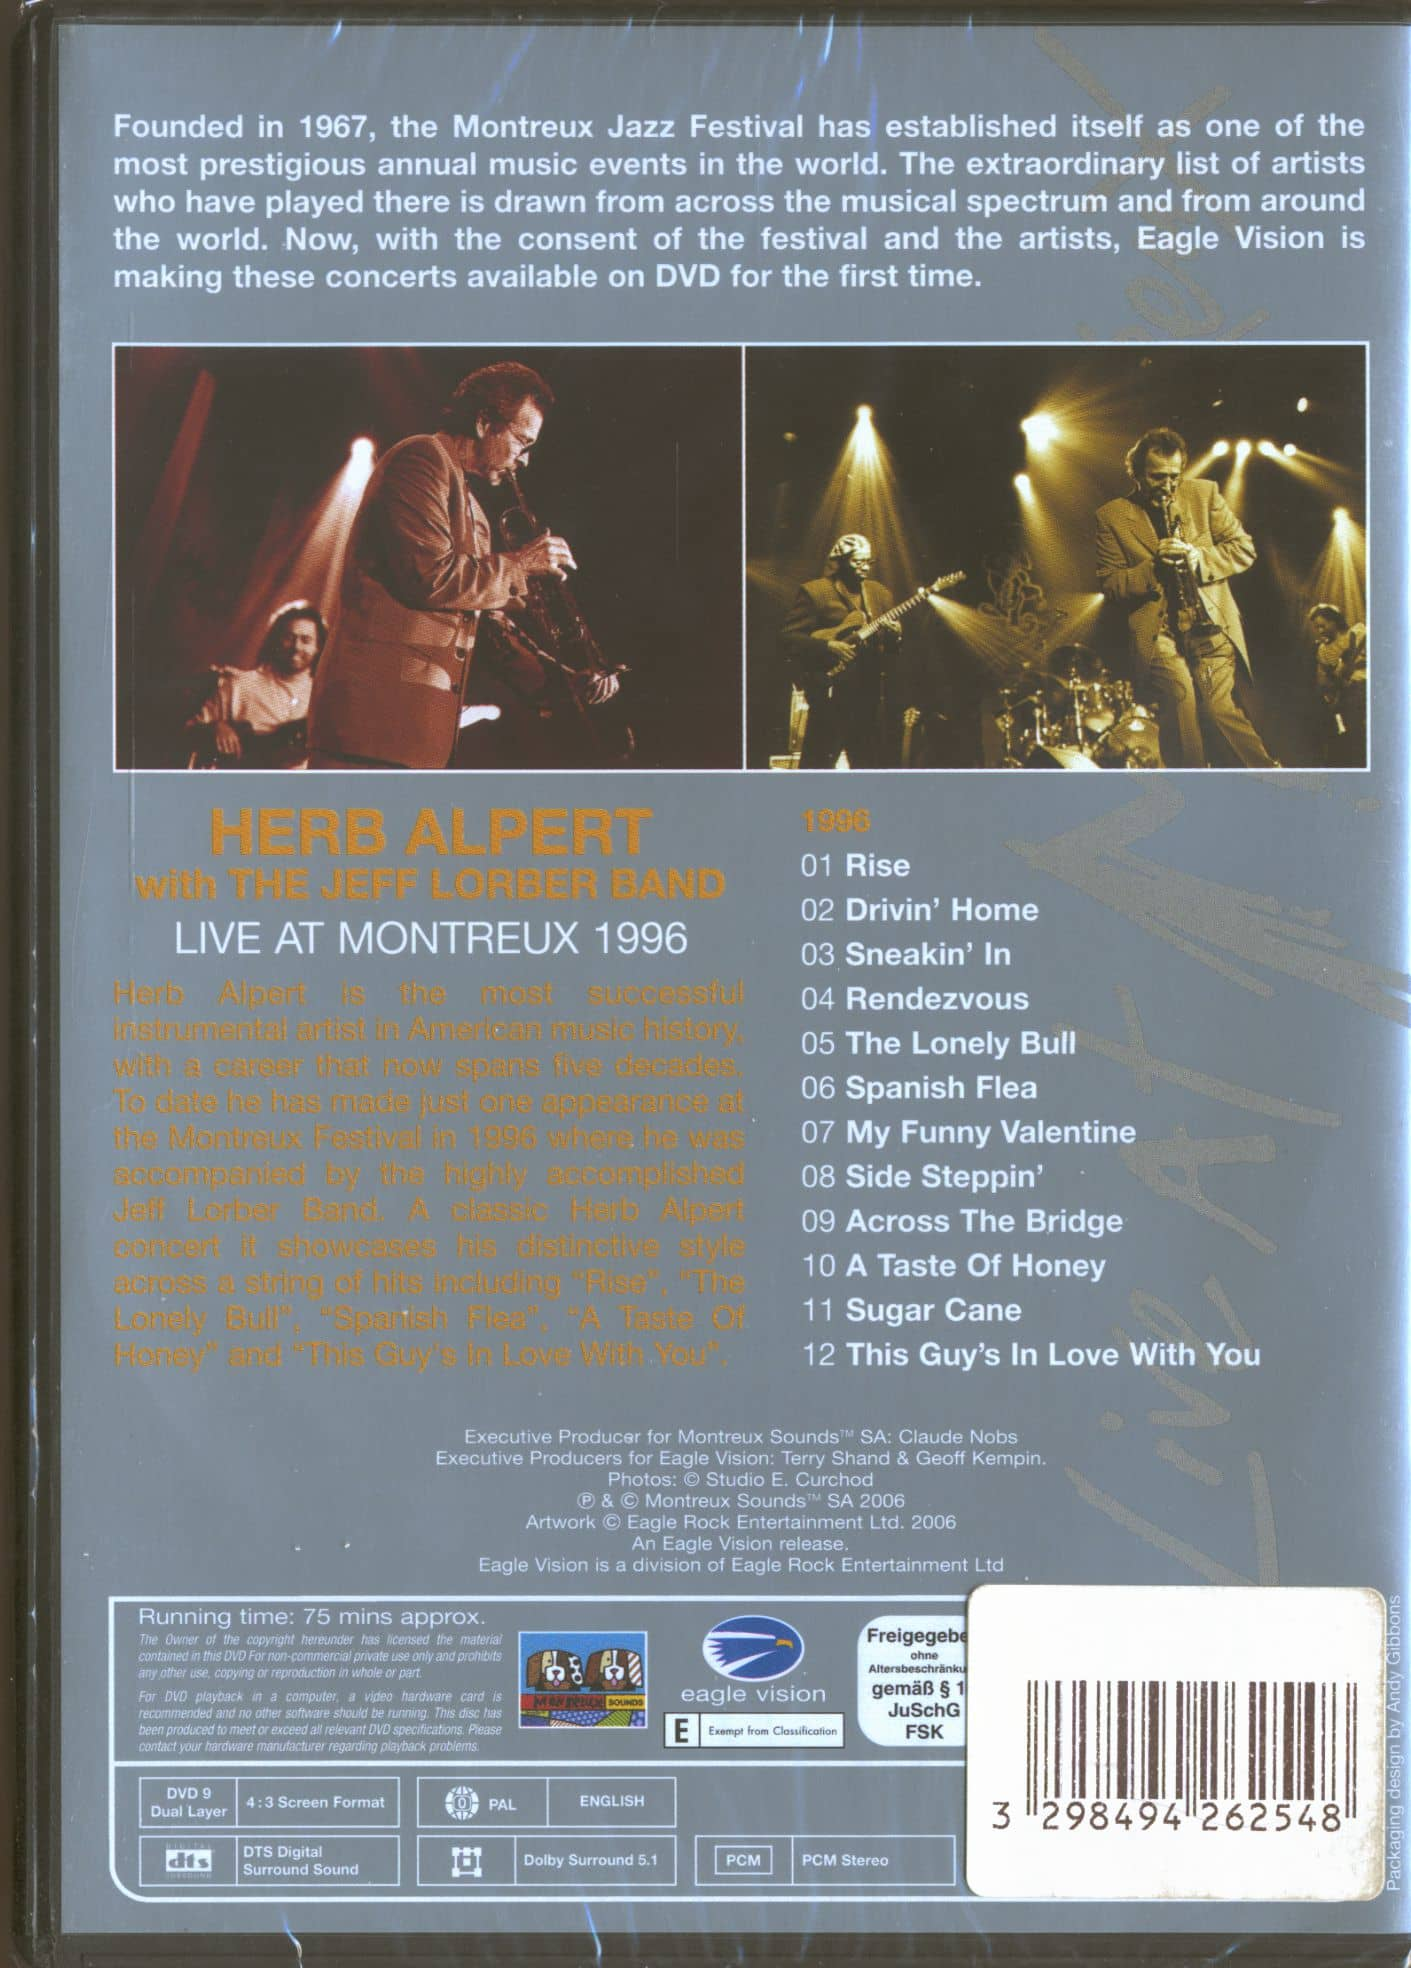 Herb Alpert with The Jeff Lorber Band Live At Montreux 1996 (DVD)